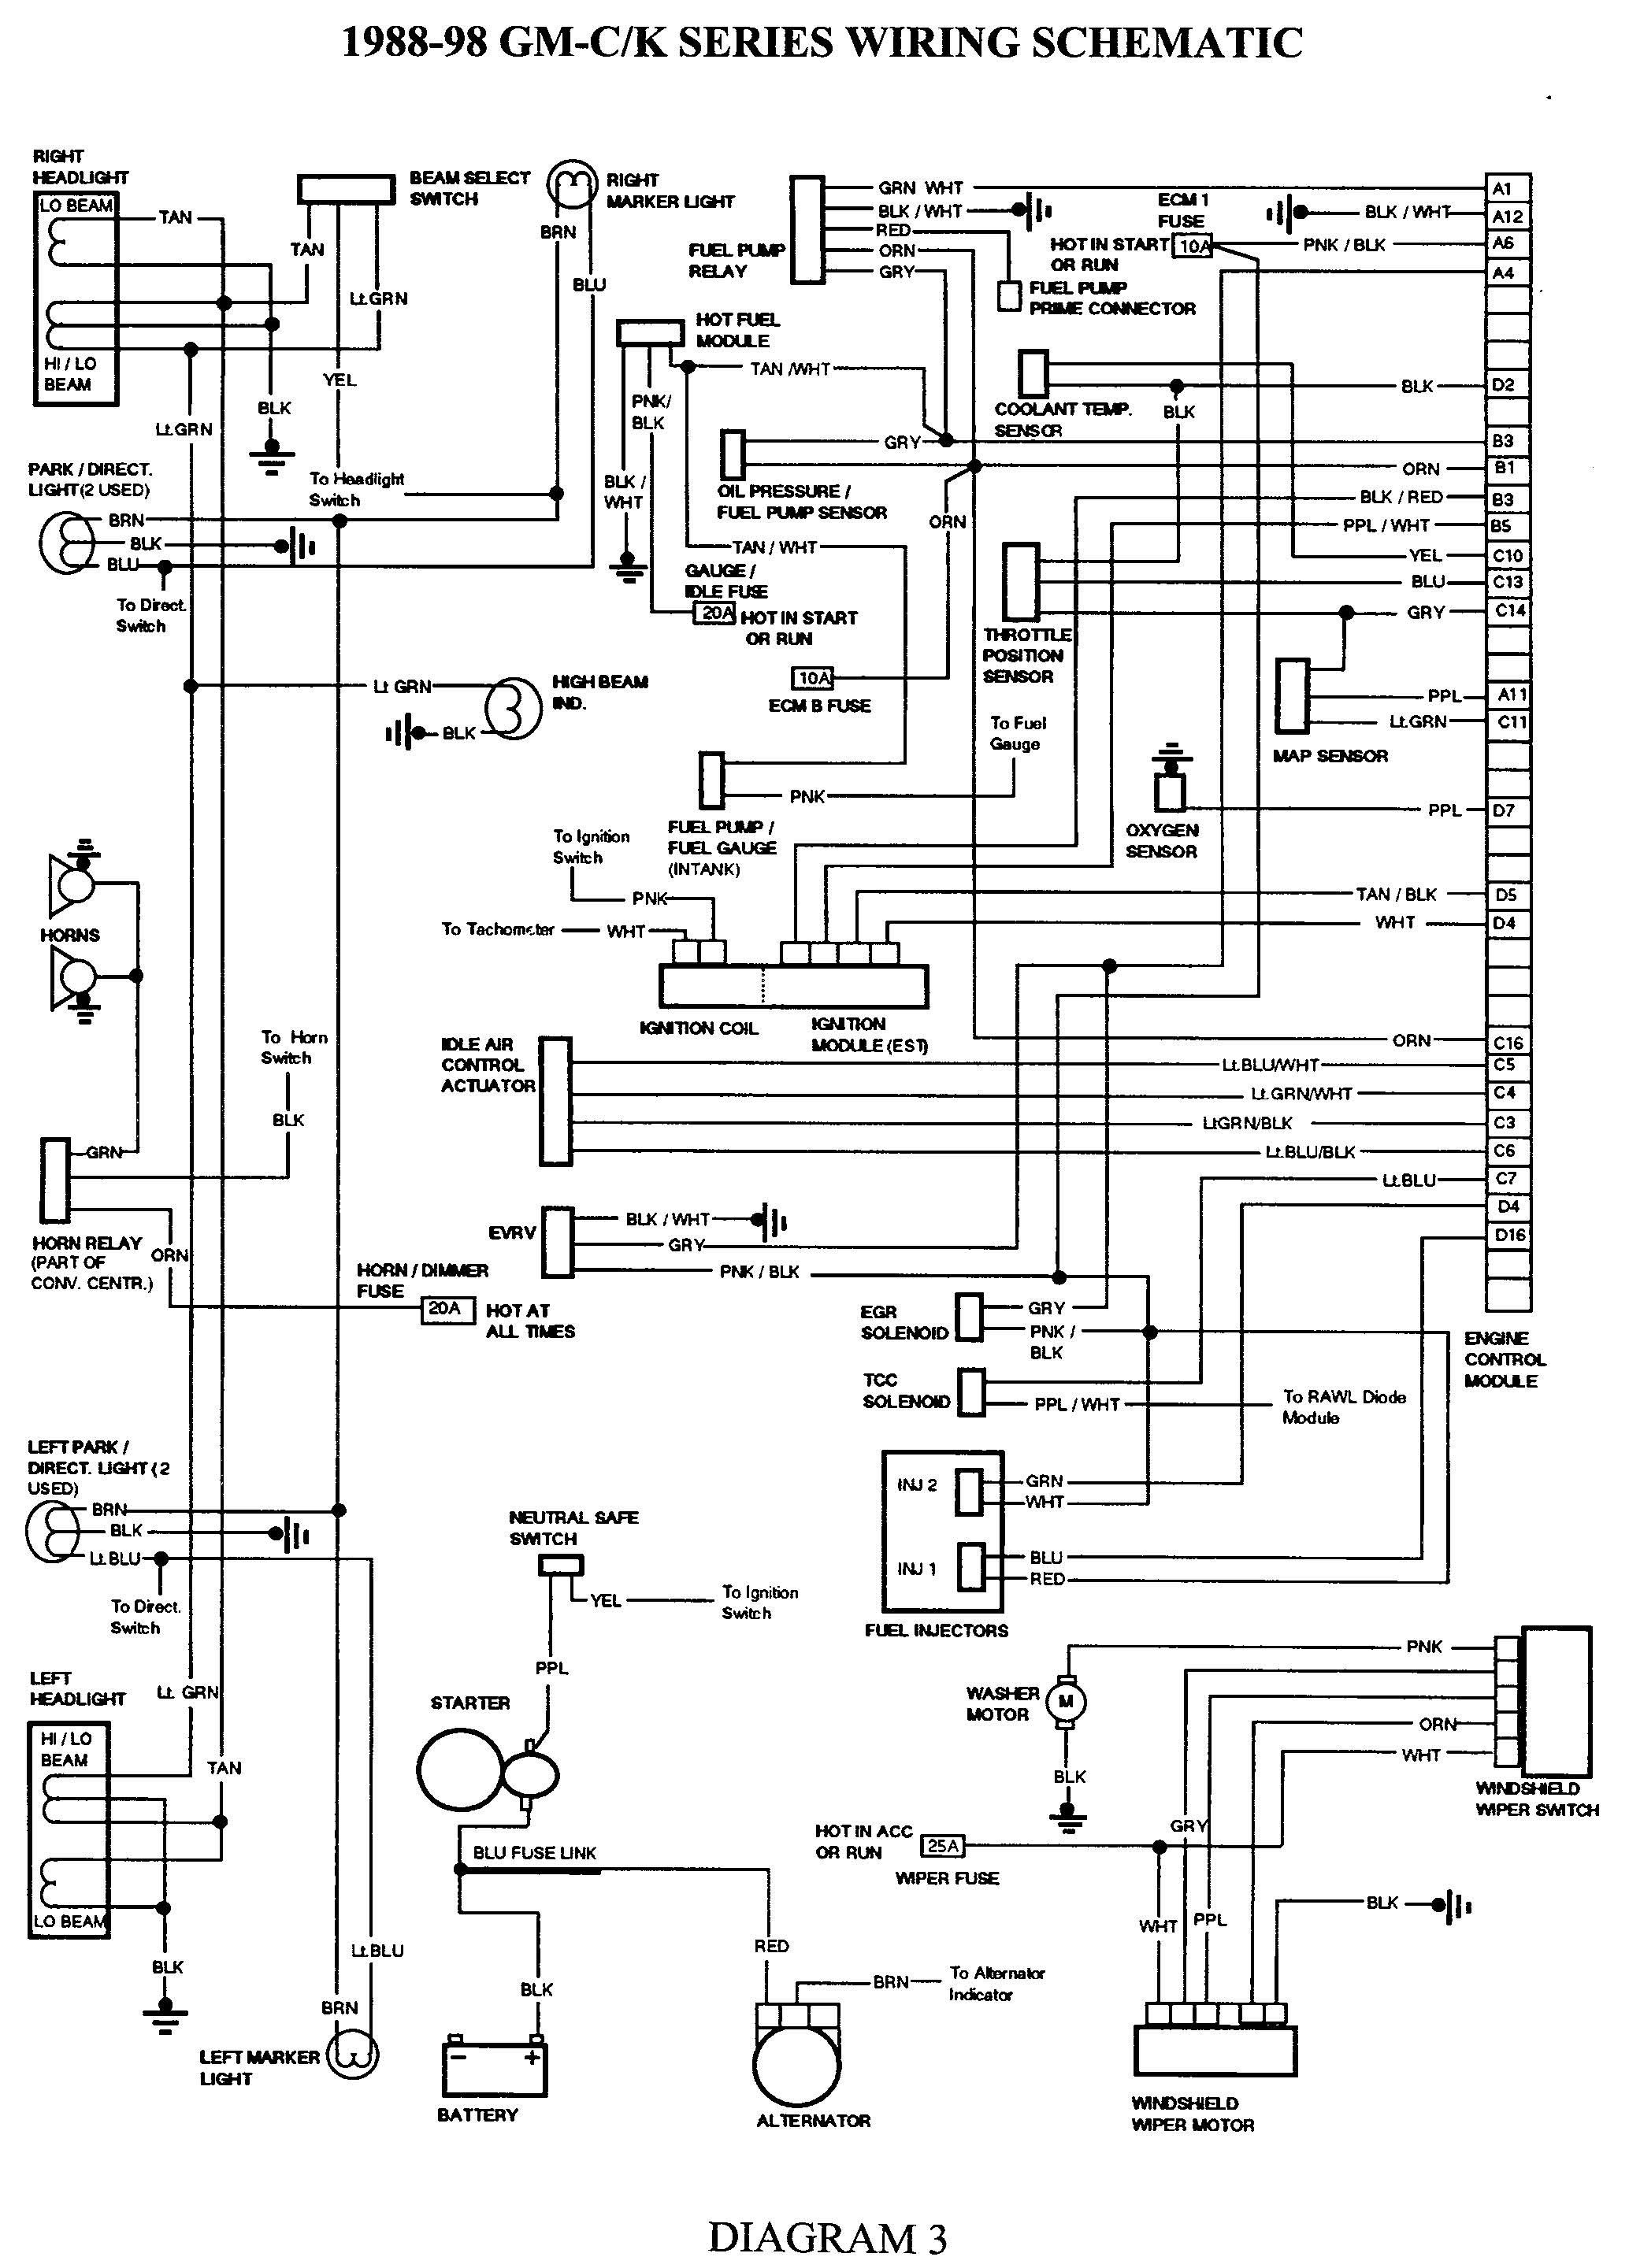 1998 Lincoln Town Car Fuse Diagram 93 Mustang Gt Box Under Hood 98 Gmc Sierra Headlight Wiring Circuit Diagrams Image Of